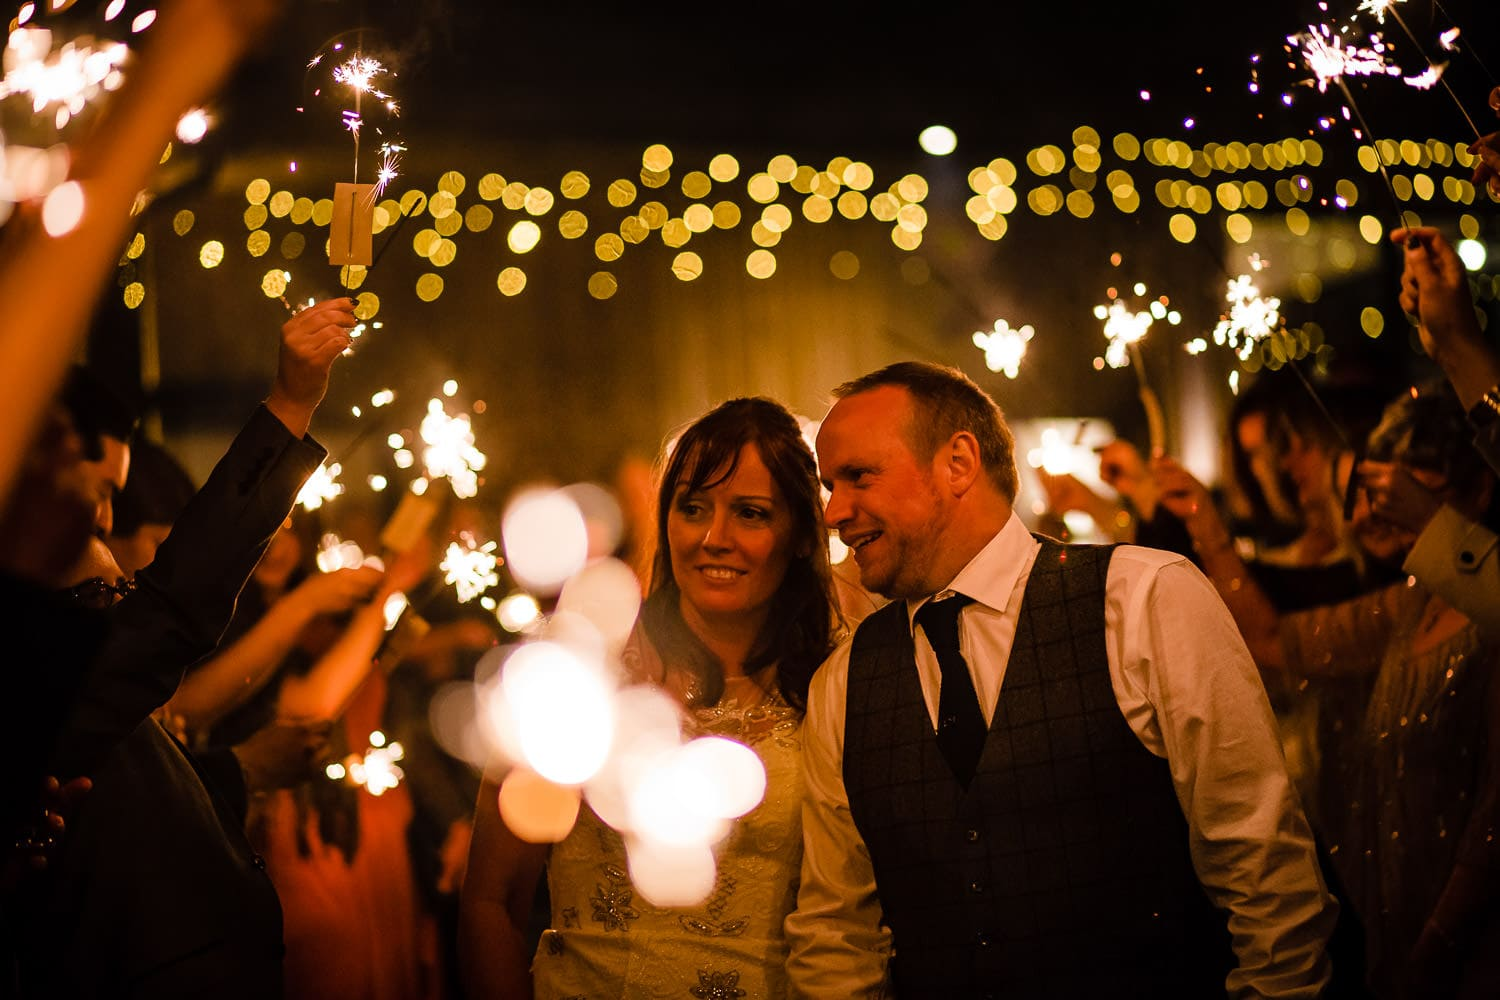 Hothorpe Hall and The Woodlands Wedding Photography captures newlyweds with sparklers